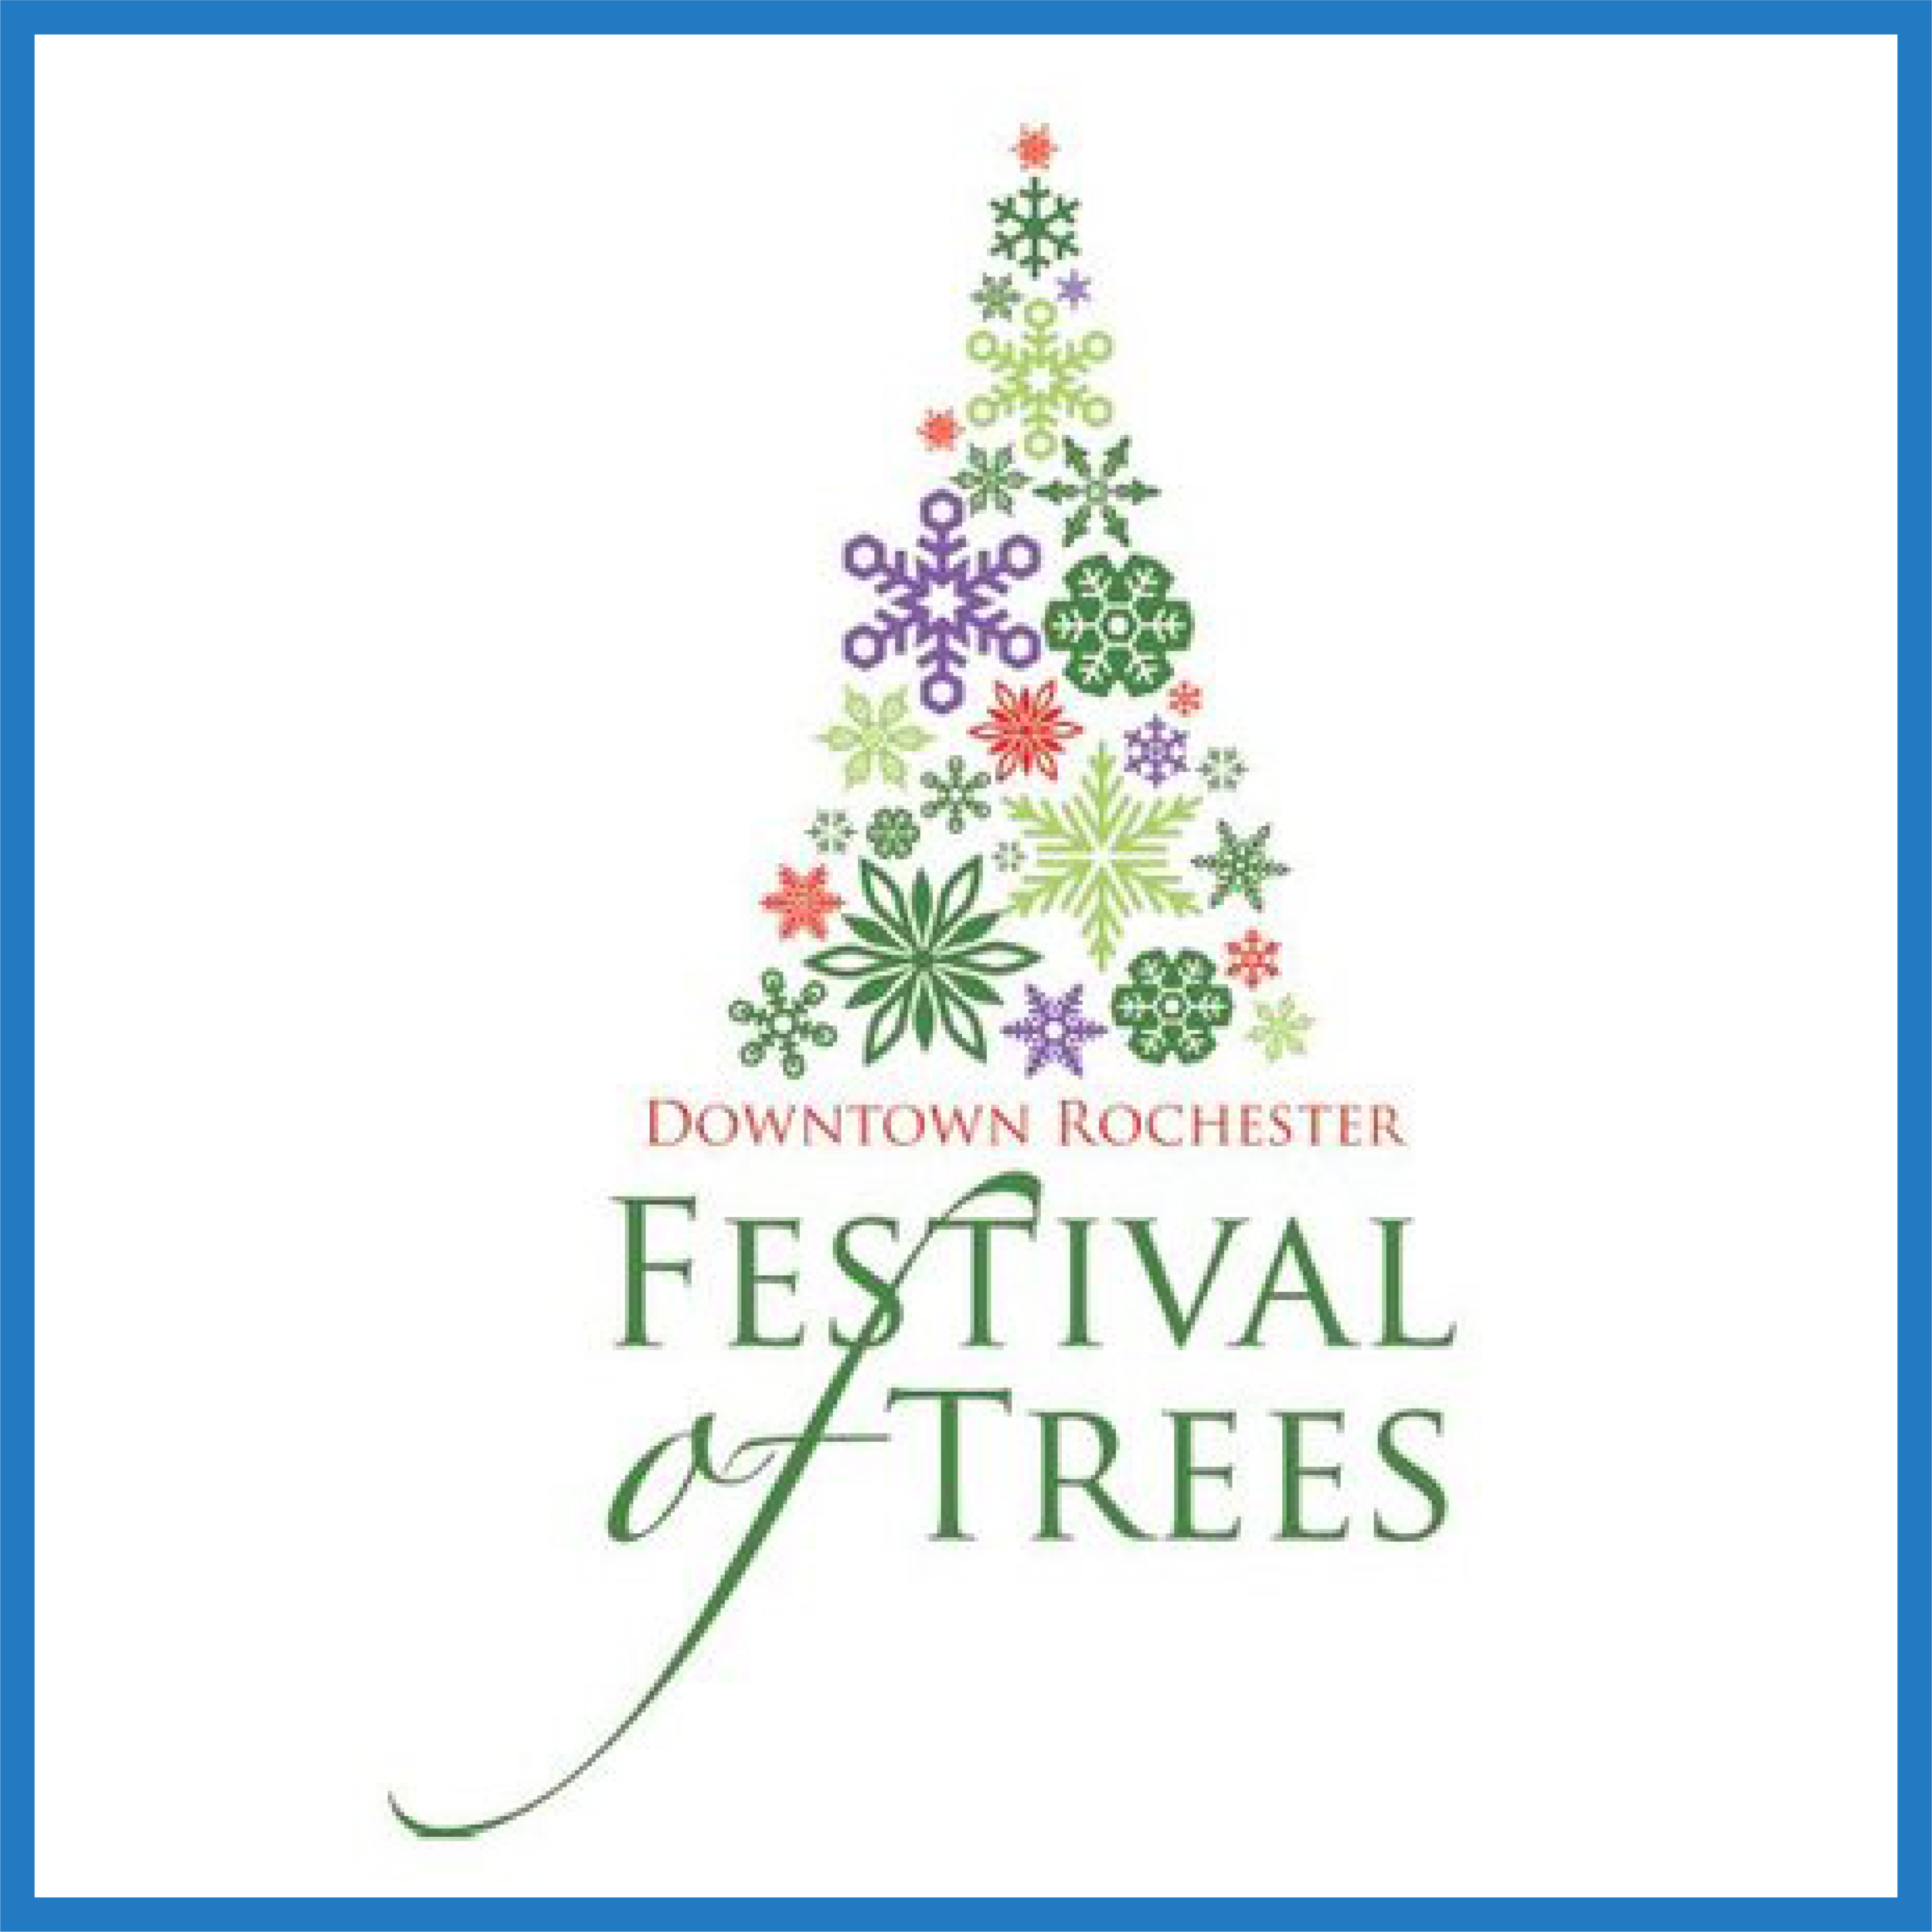 Downtown Rochester Festival of Trees -